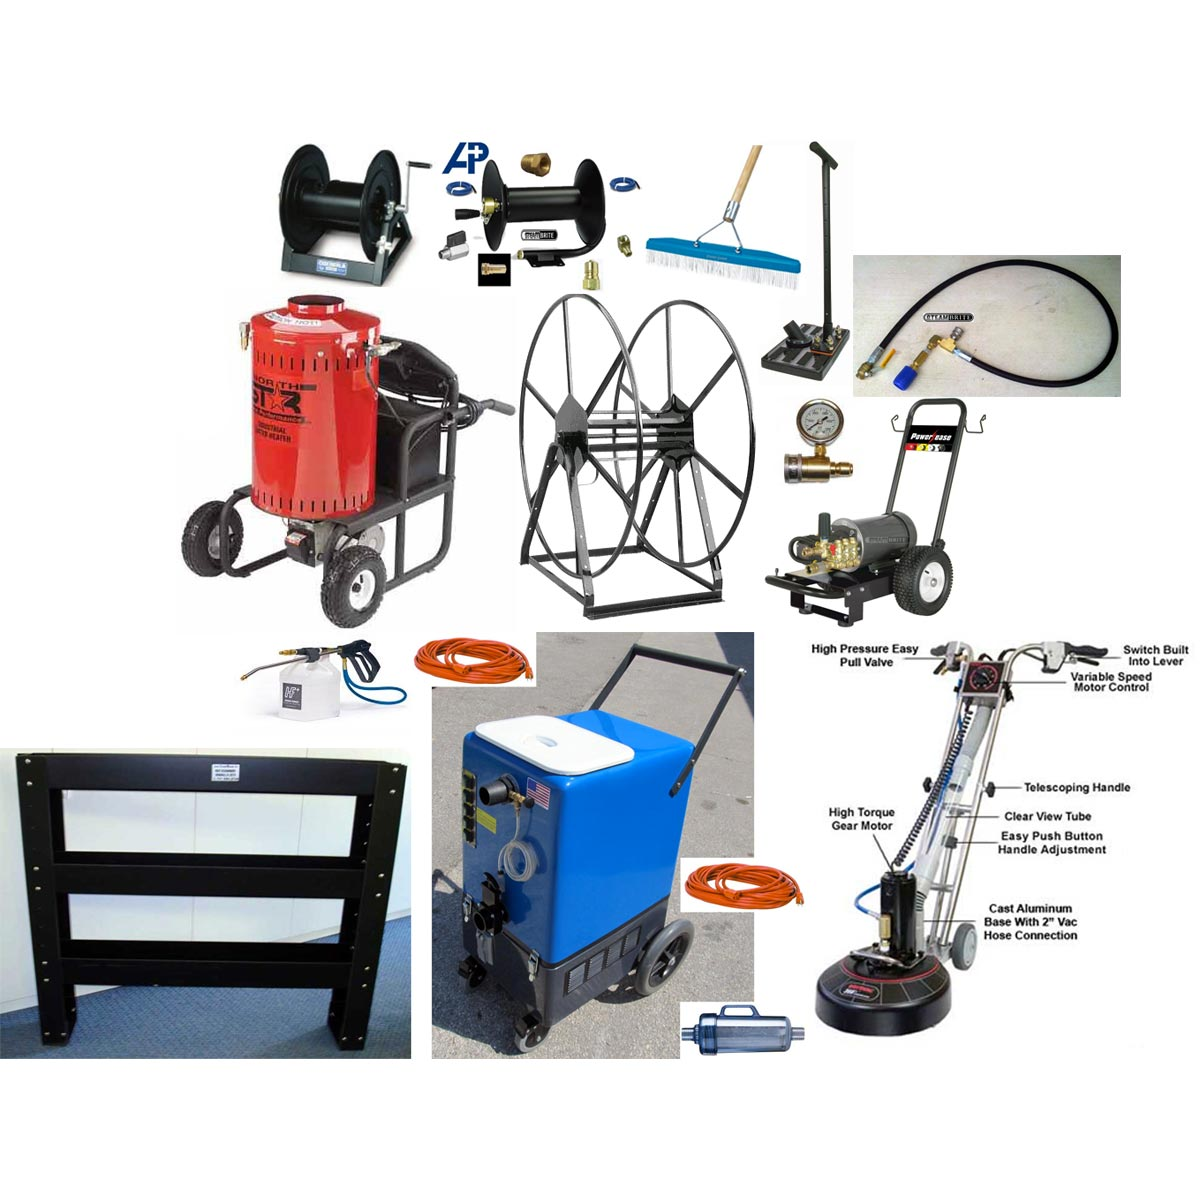 -ETM Electric Truckmount Trailer Package Goliath 1500psi HEATED Flood Pumper 26gal Four 2 Stage Vacs and Pressure Washer Recovery 120v with Lint Filtration